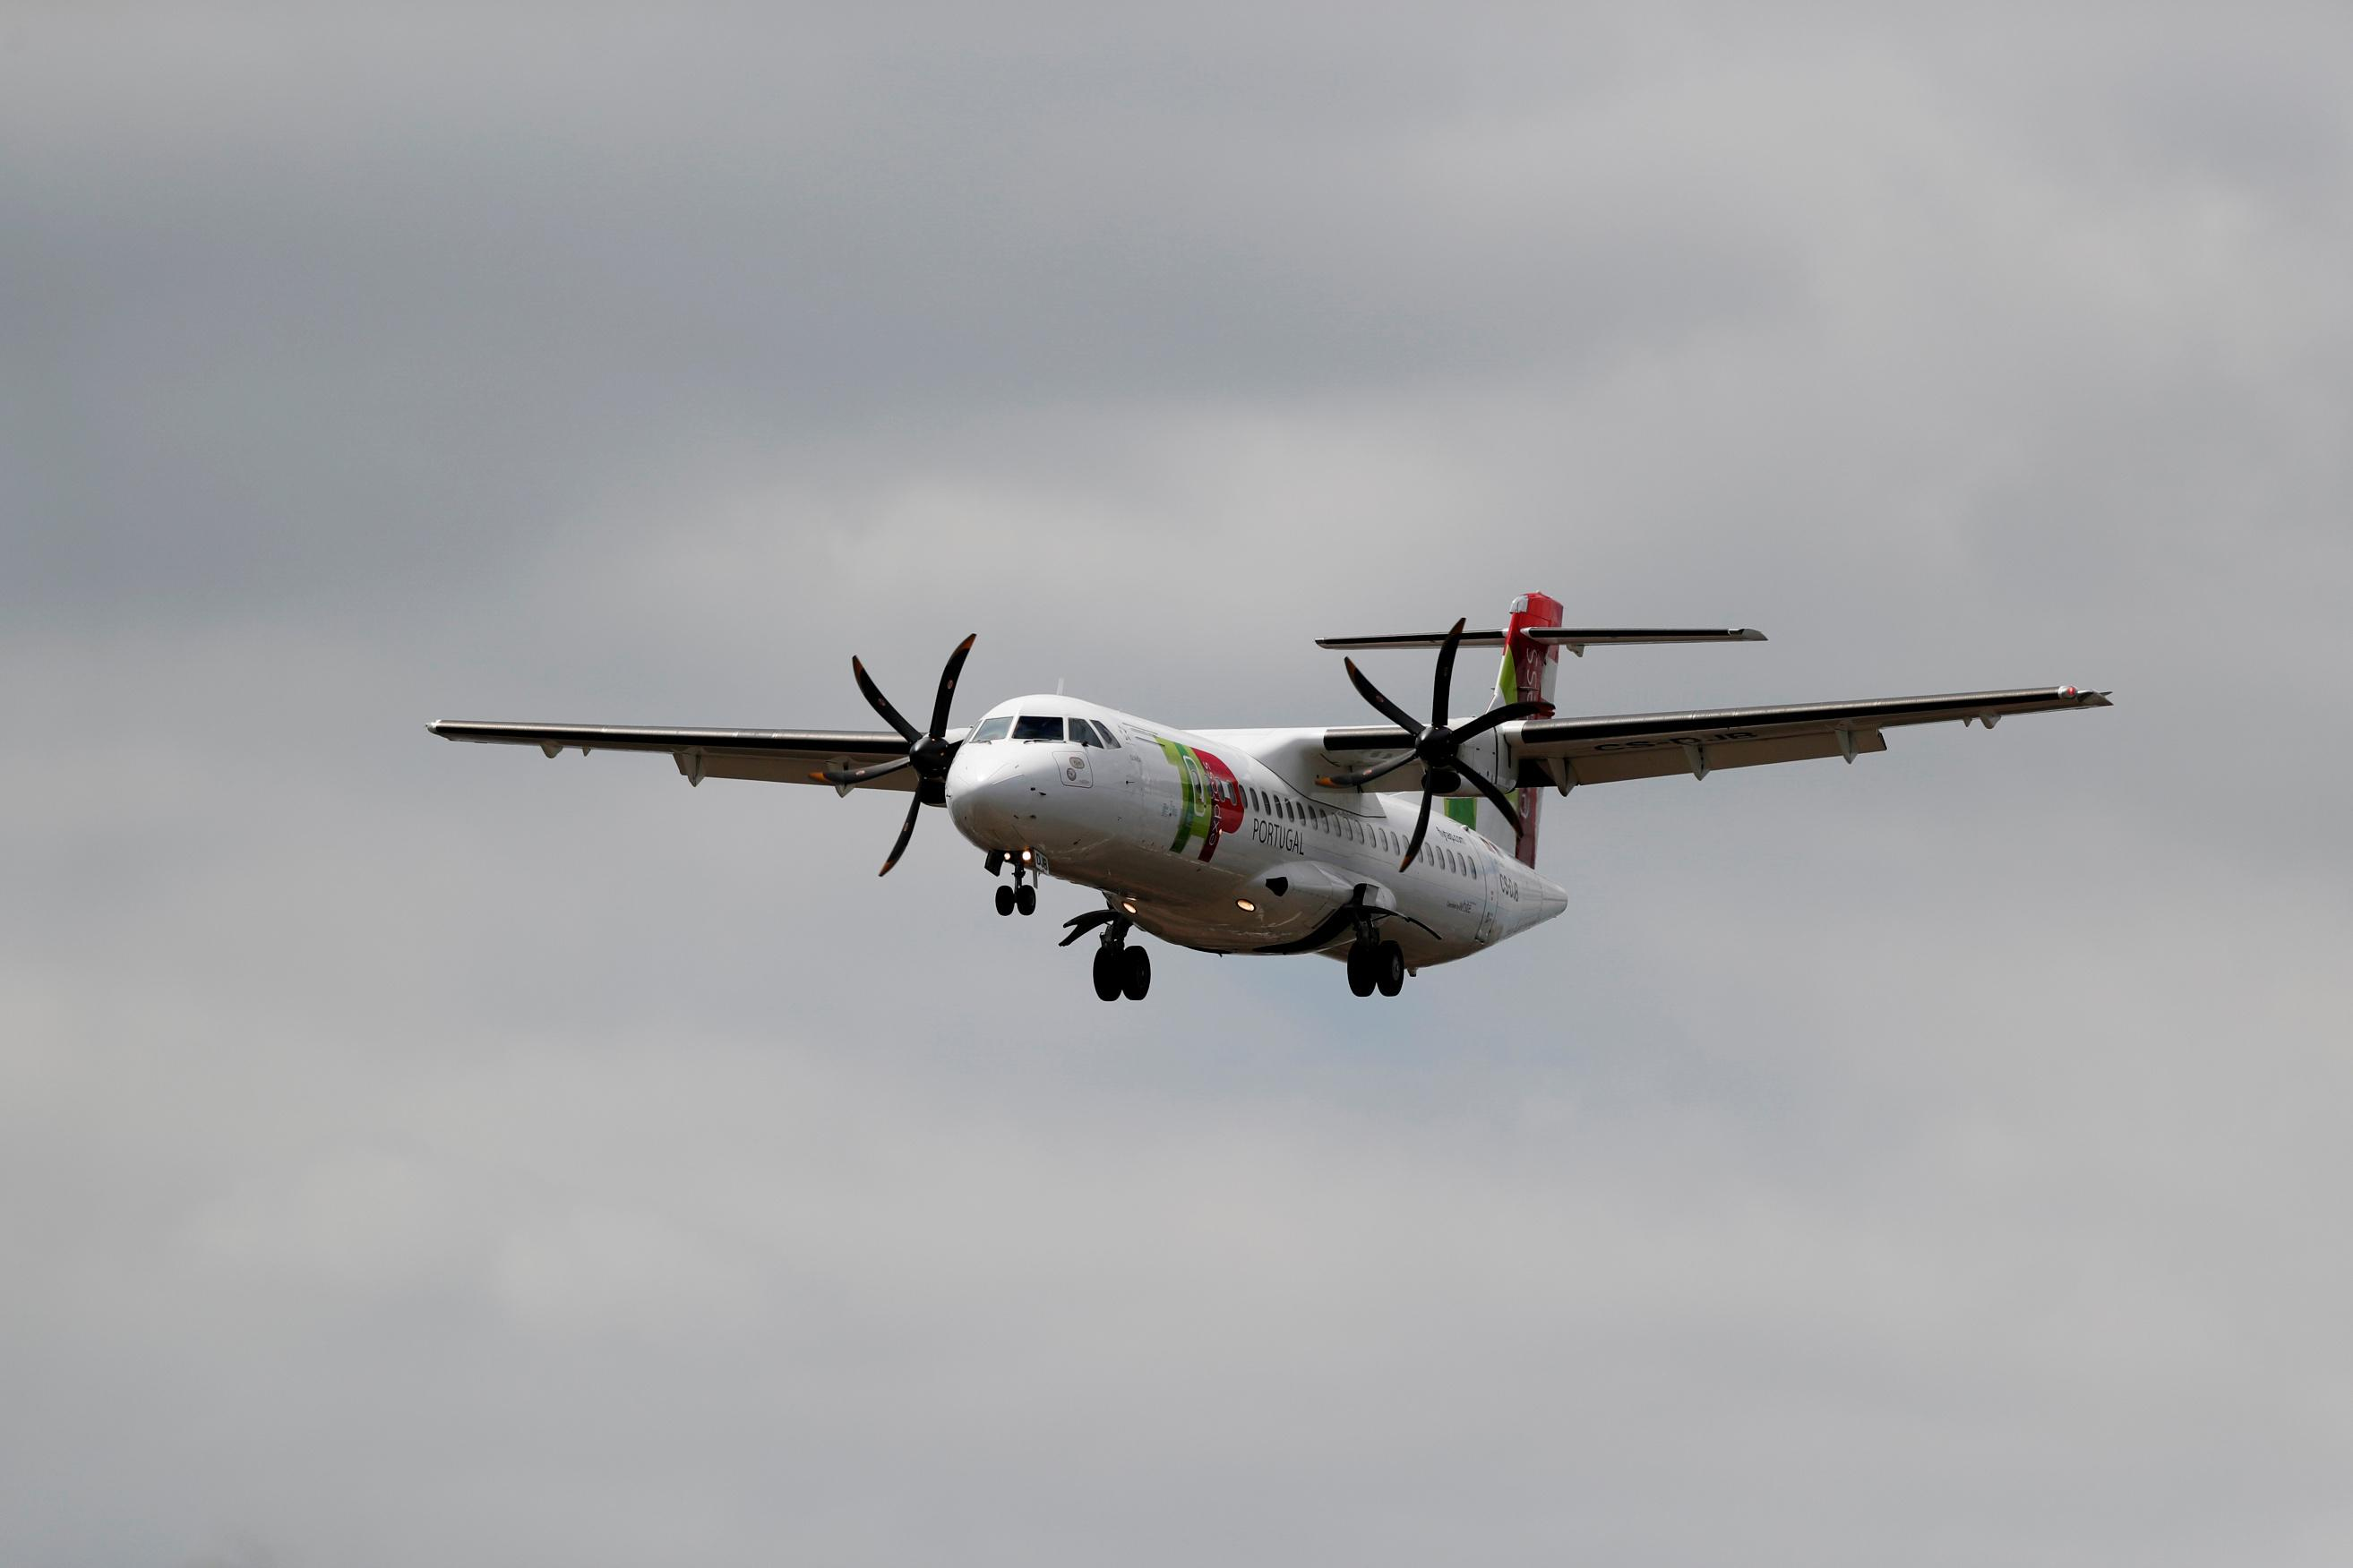 Pilot shortages, unsold planes weigh on ATR deliveries - sources